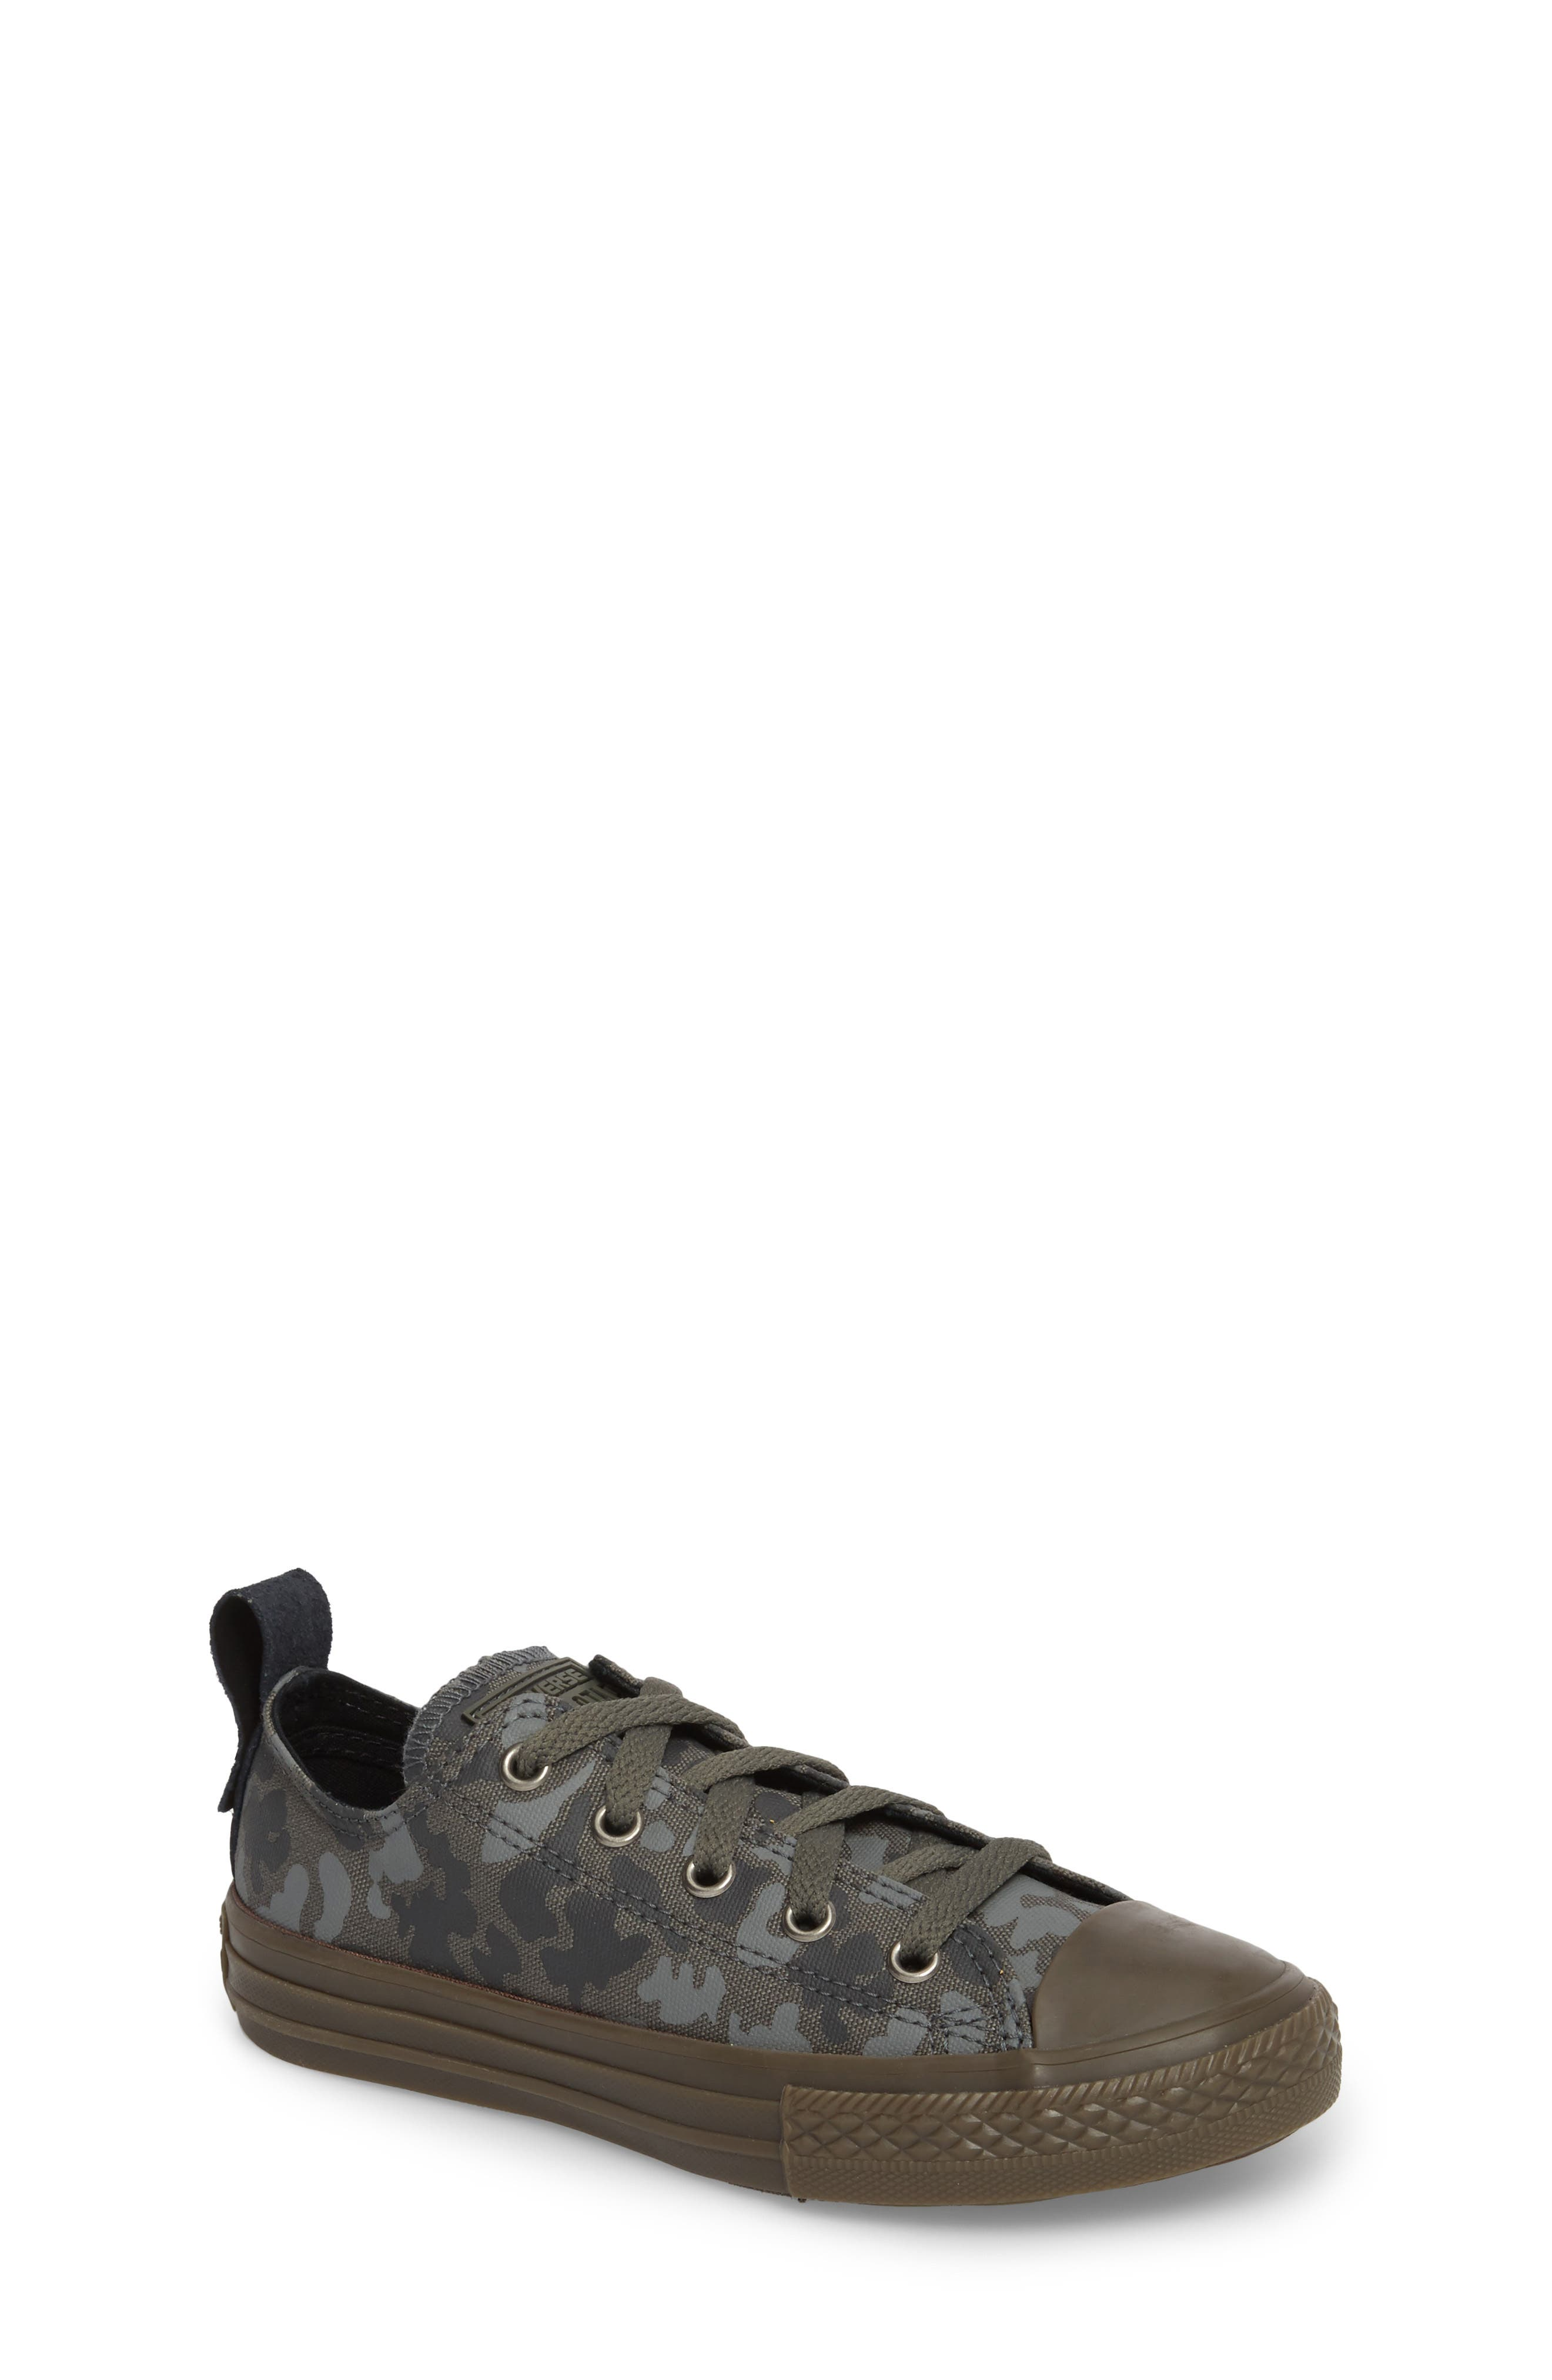 Chuck Taylor<sup>®</sup> All Star<sup>®</sup> Camo Ox Low Top Sneaker,                         Main,                         color, 022